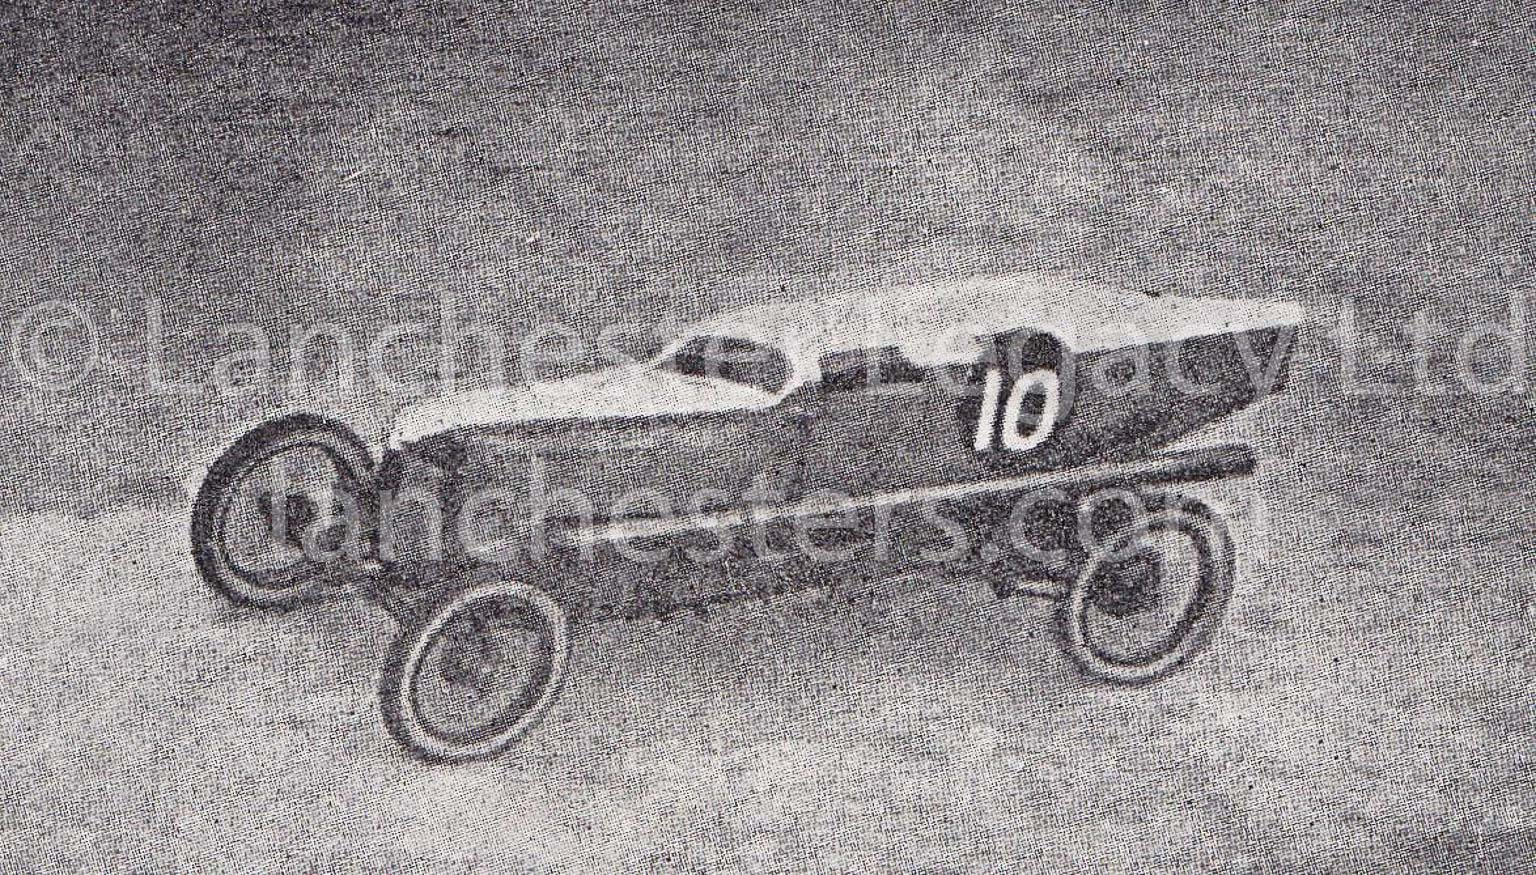 Lanchester 25hp Single-Seat Racer made in 1921 by Tommy Hann